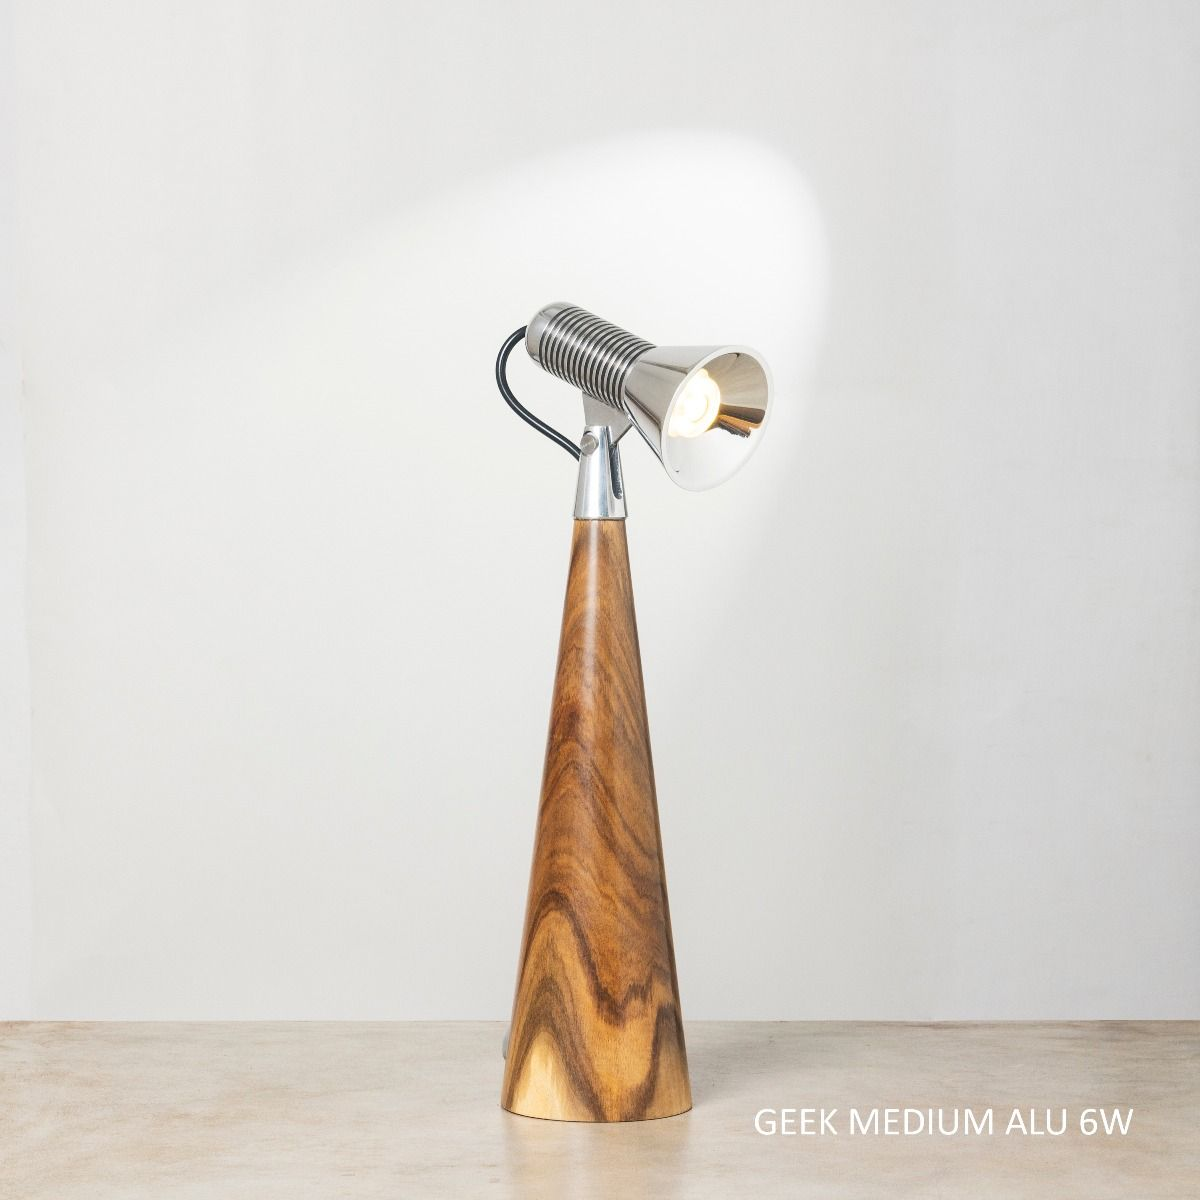 Geek M  ALU 6W Table Lamp